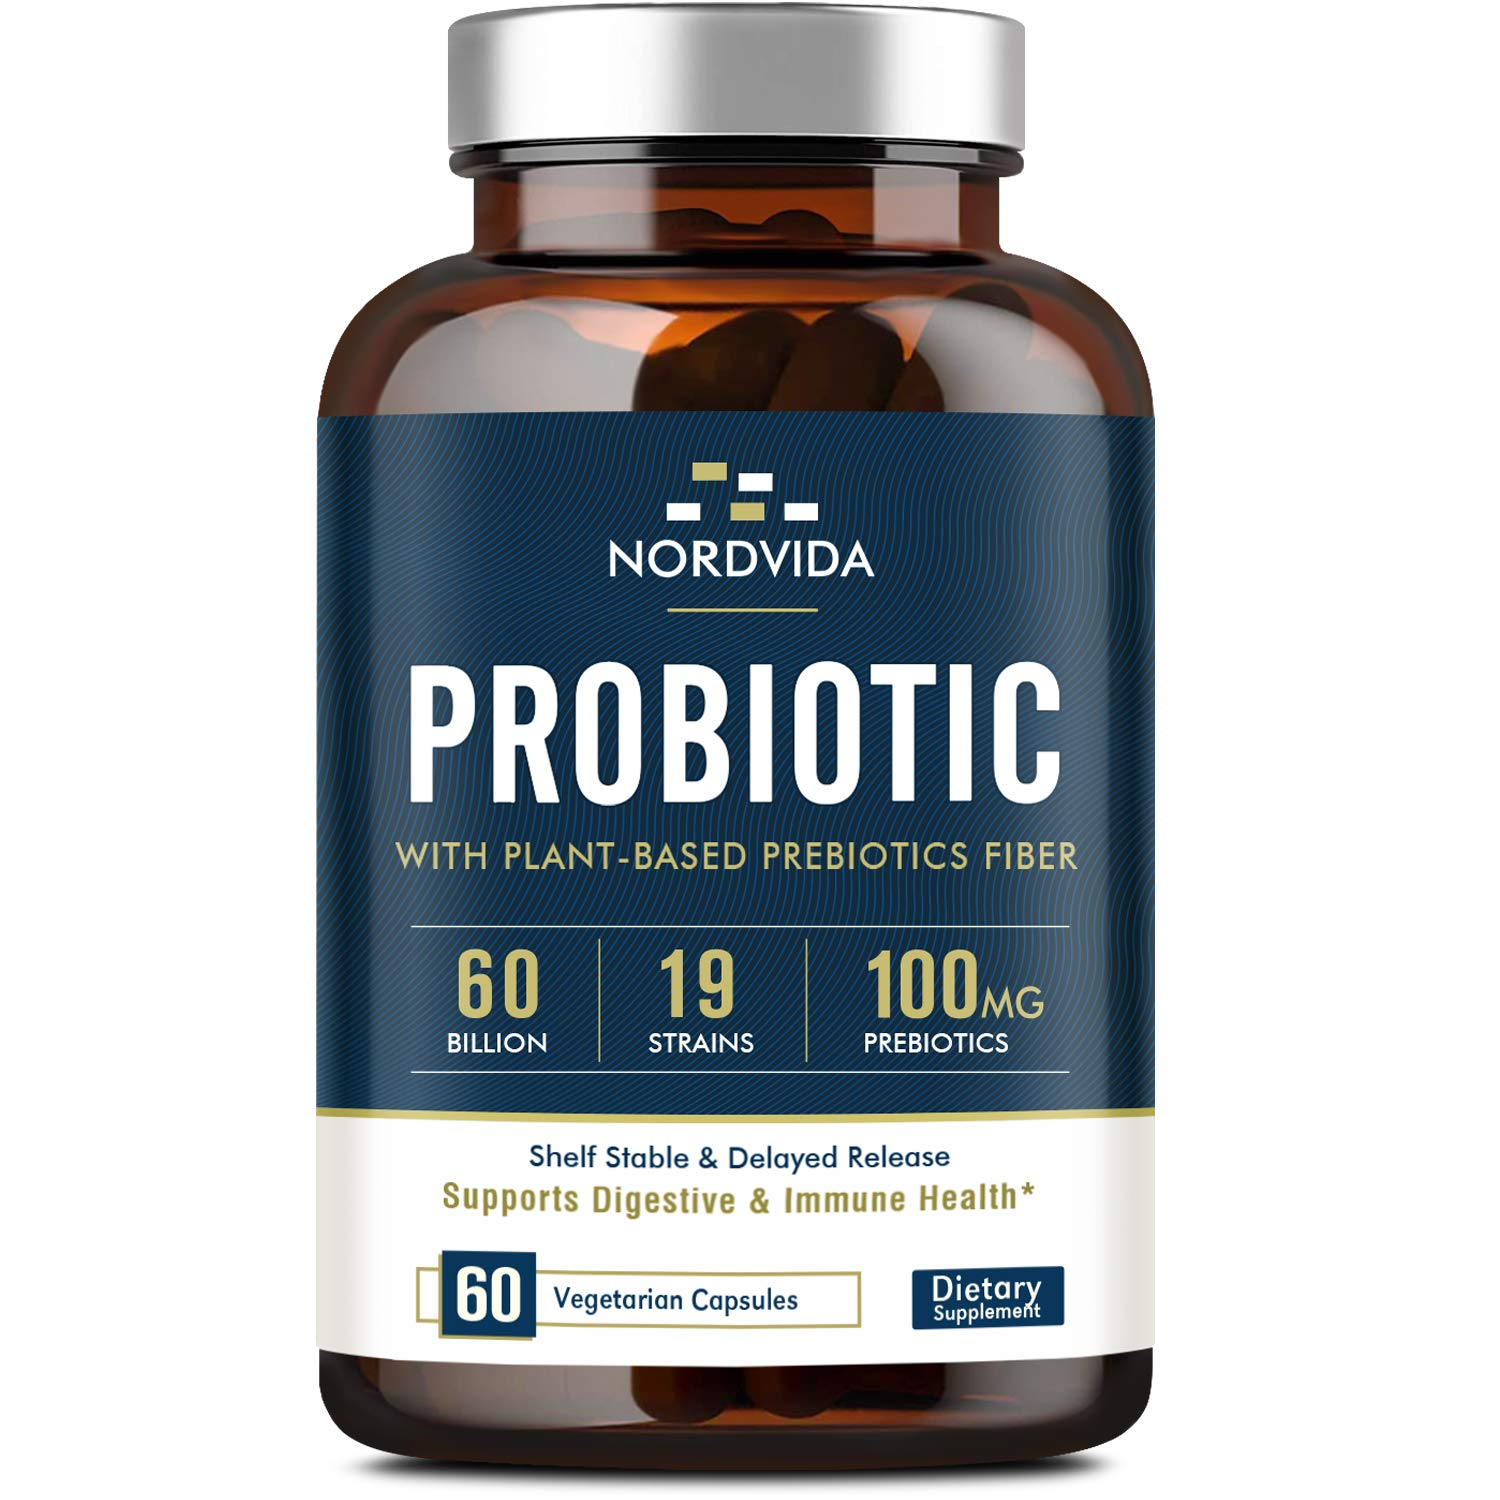 Probiotics 60 Billion CFU 19 Strains with Organic Prebiotic for Men & Women, Shelf Stable Delayed Release, No Need for Refrigeration, Digestive & Immune Health, Vegan, Non-GMO, No Soy Dairy, 60 Caps